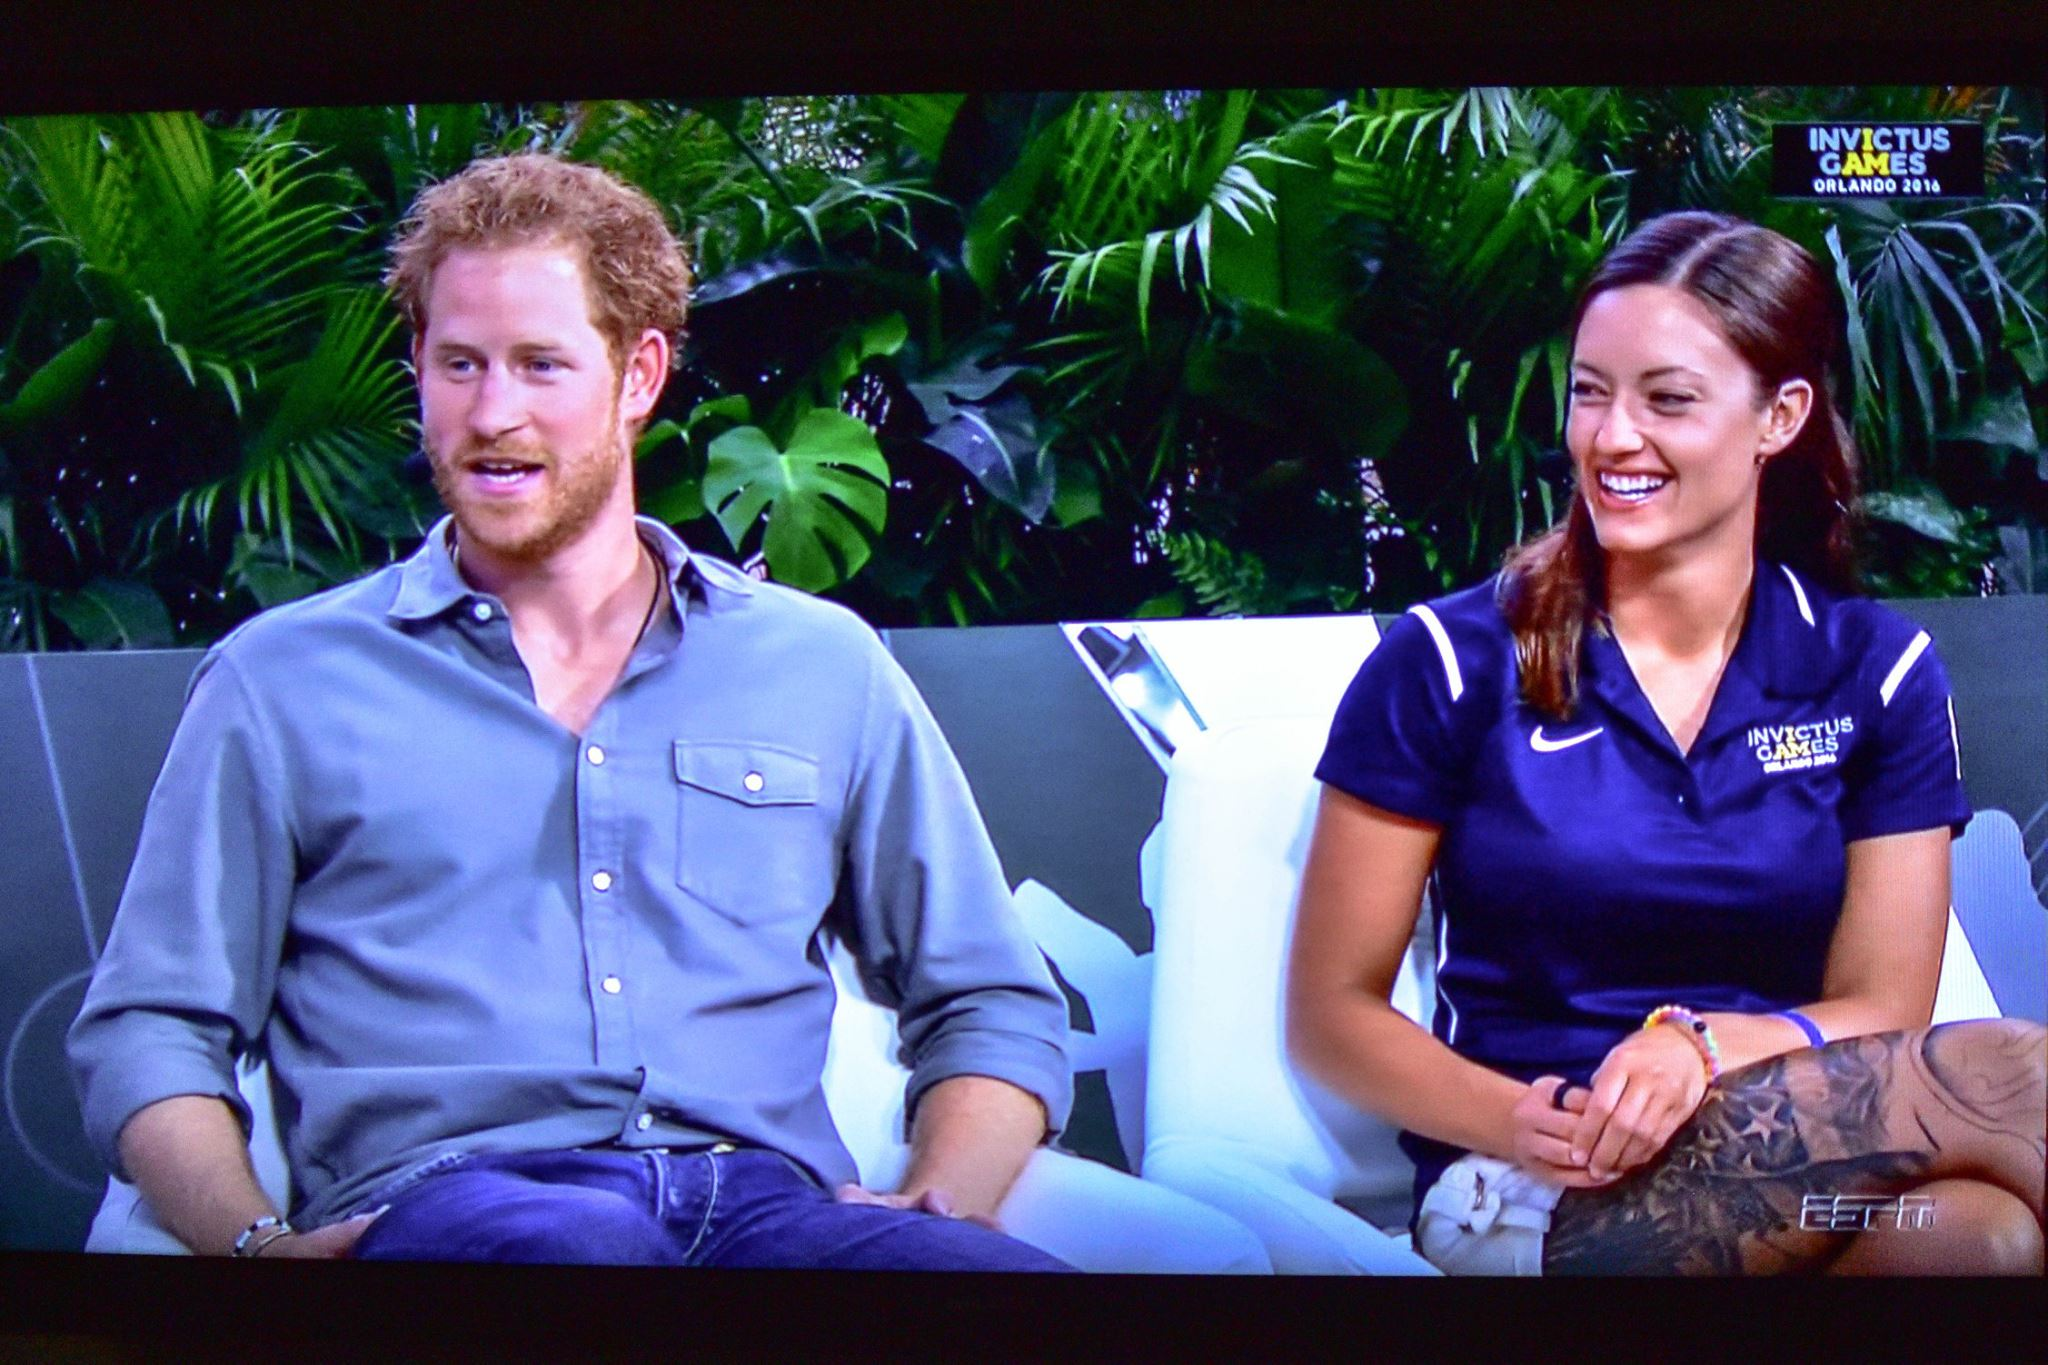 U.S. Army Sgt. Elizabeth Marks, right, appears with Prince Harry on an ESPN broadcast discussing the 2016 Invictus Games. Marks made international headlines Wednesday after asking the British royal to give one of her gold medals to the English hospital staff that saved her life two years ago. (Photo courtesy of the U.S. Army World Class Athlete Program)